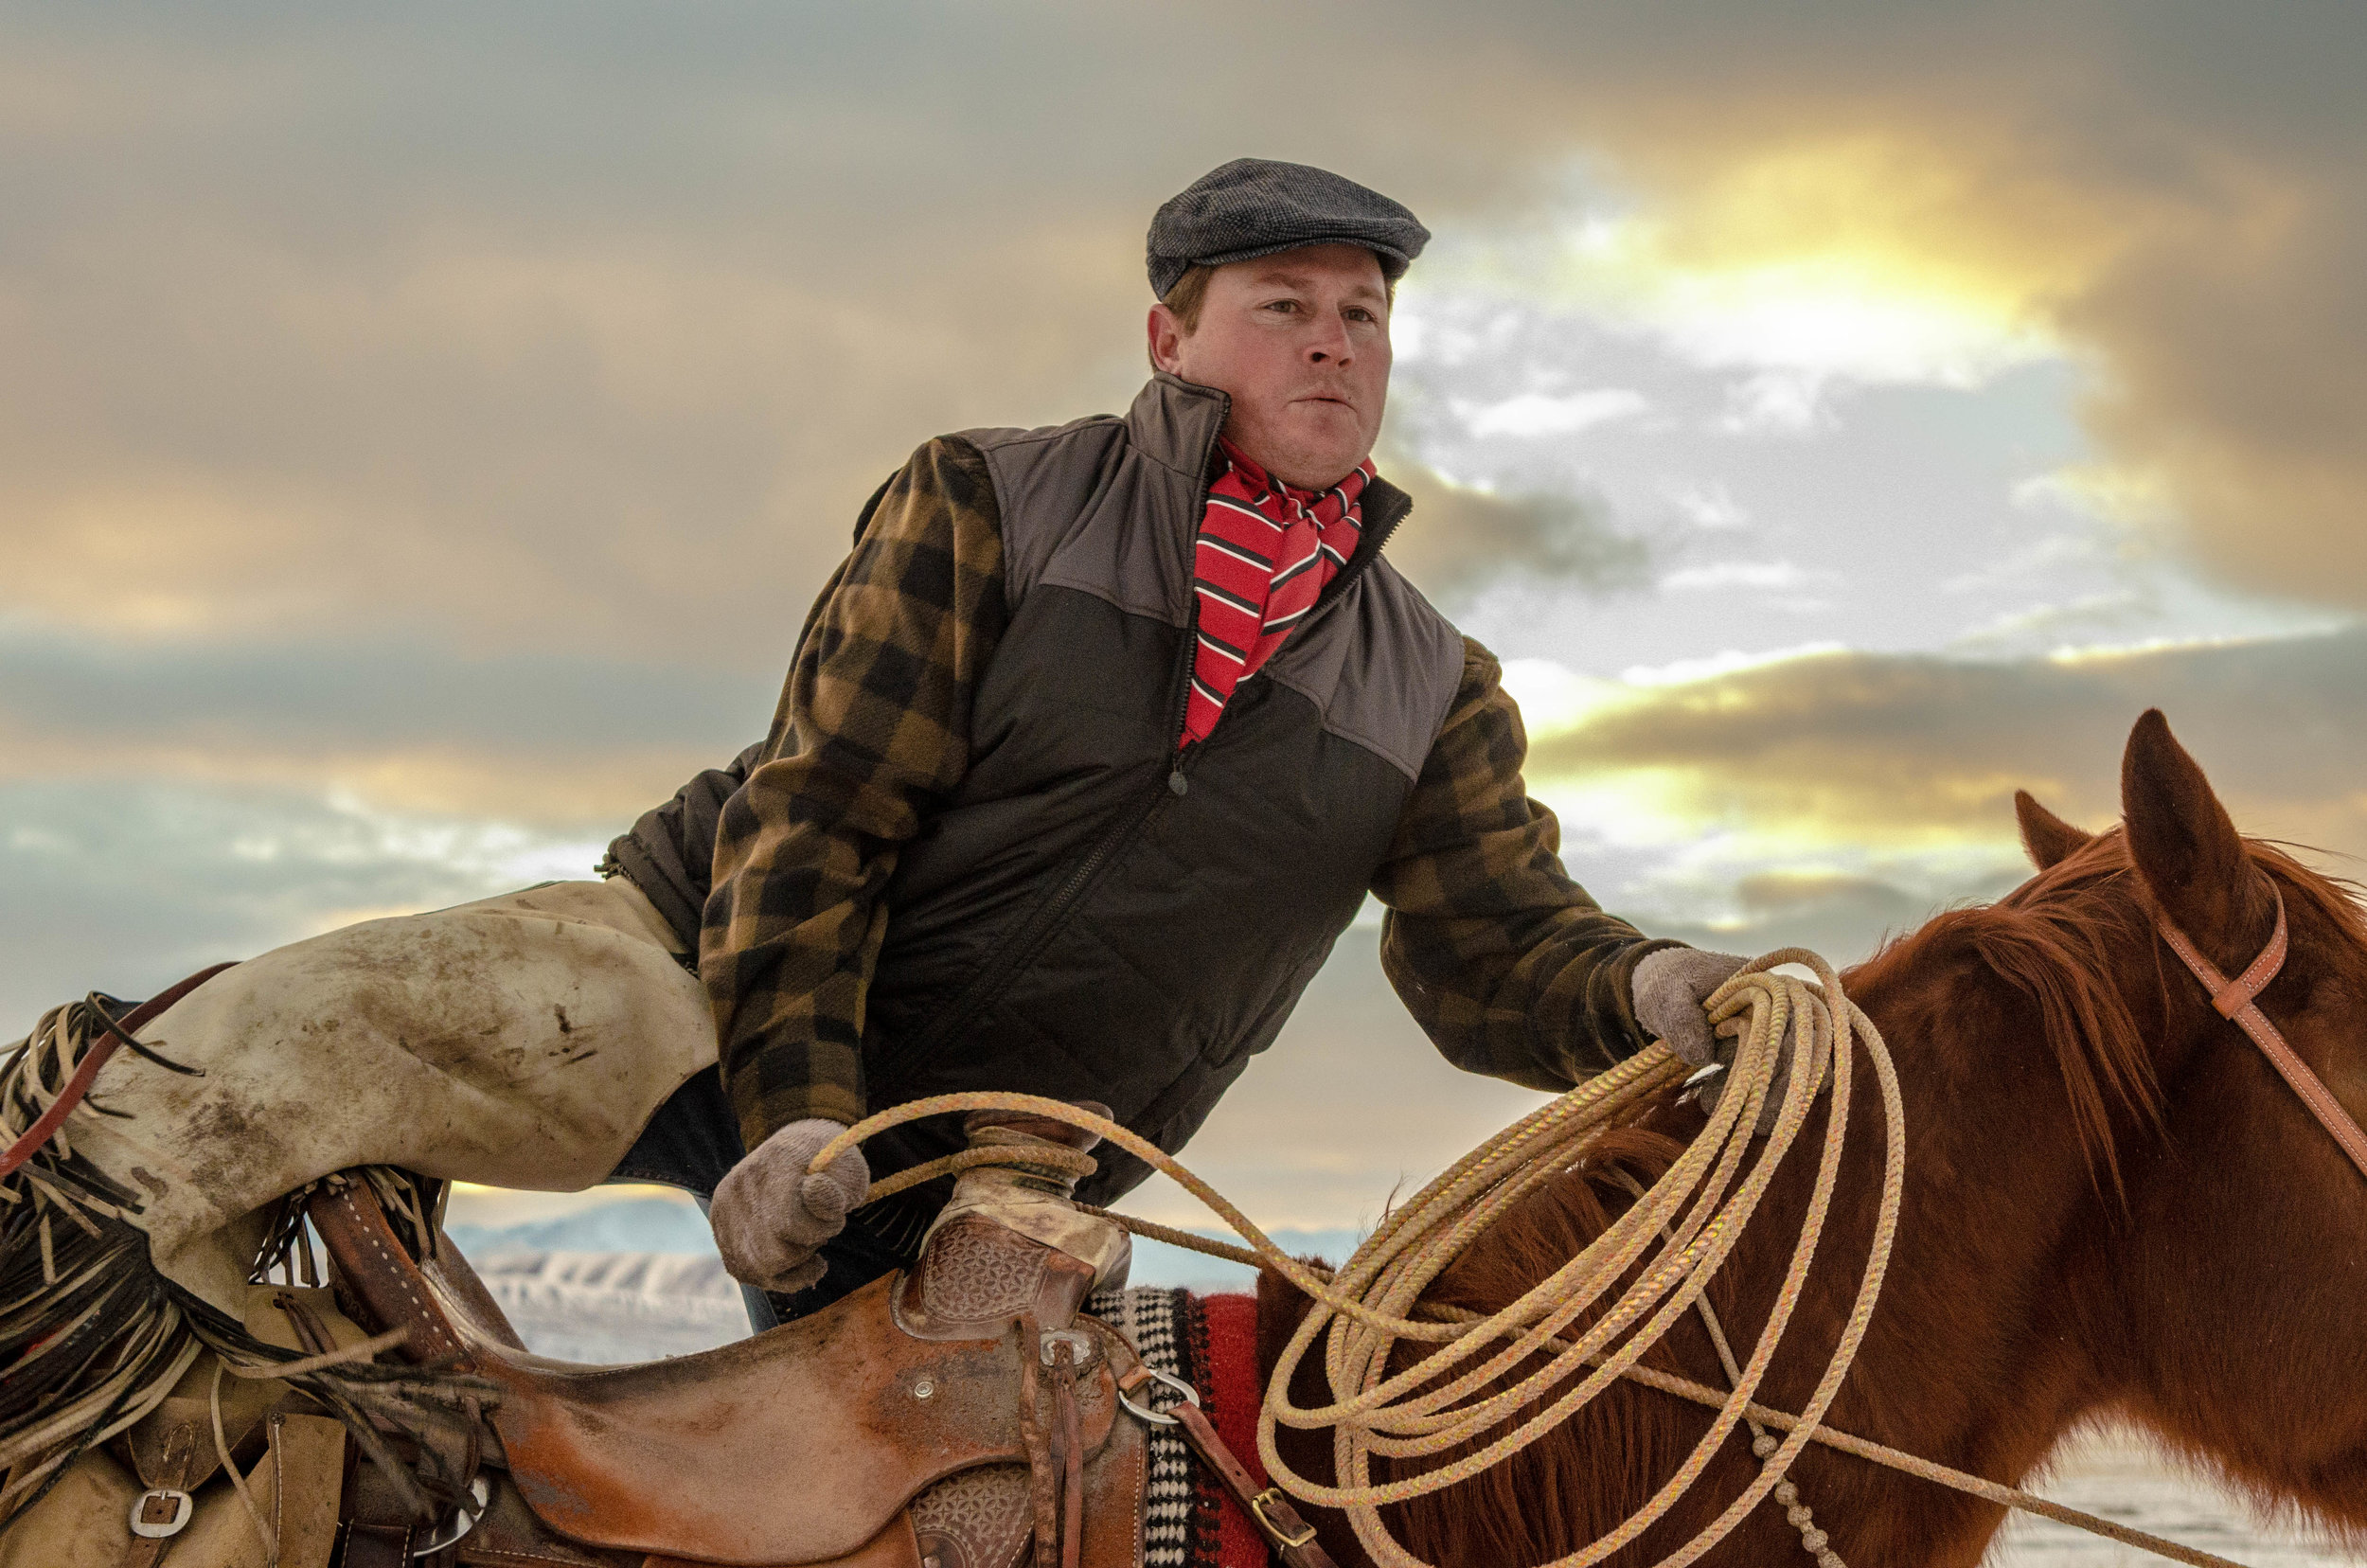 Cow Boss, Andrew Kromm, steps off to doctor a roped calf.  Clothing provided by Outback Trading Co, wild rag made by Plum Punchy Purdys, armitas by Saddle Tramp Leather (Andrew's business), saddle by Holstine Sadderly.